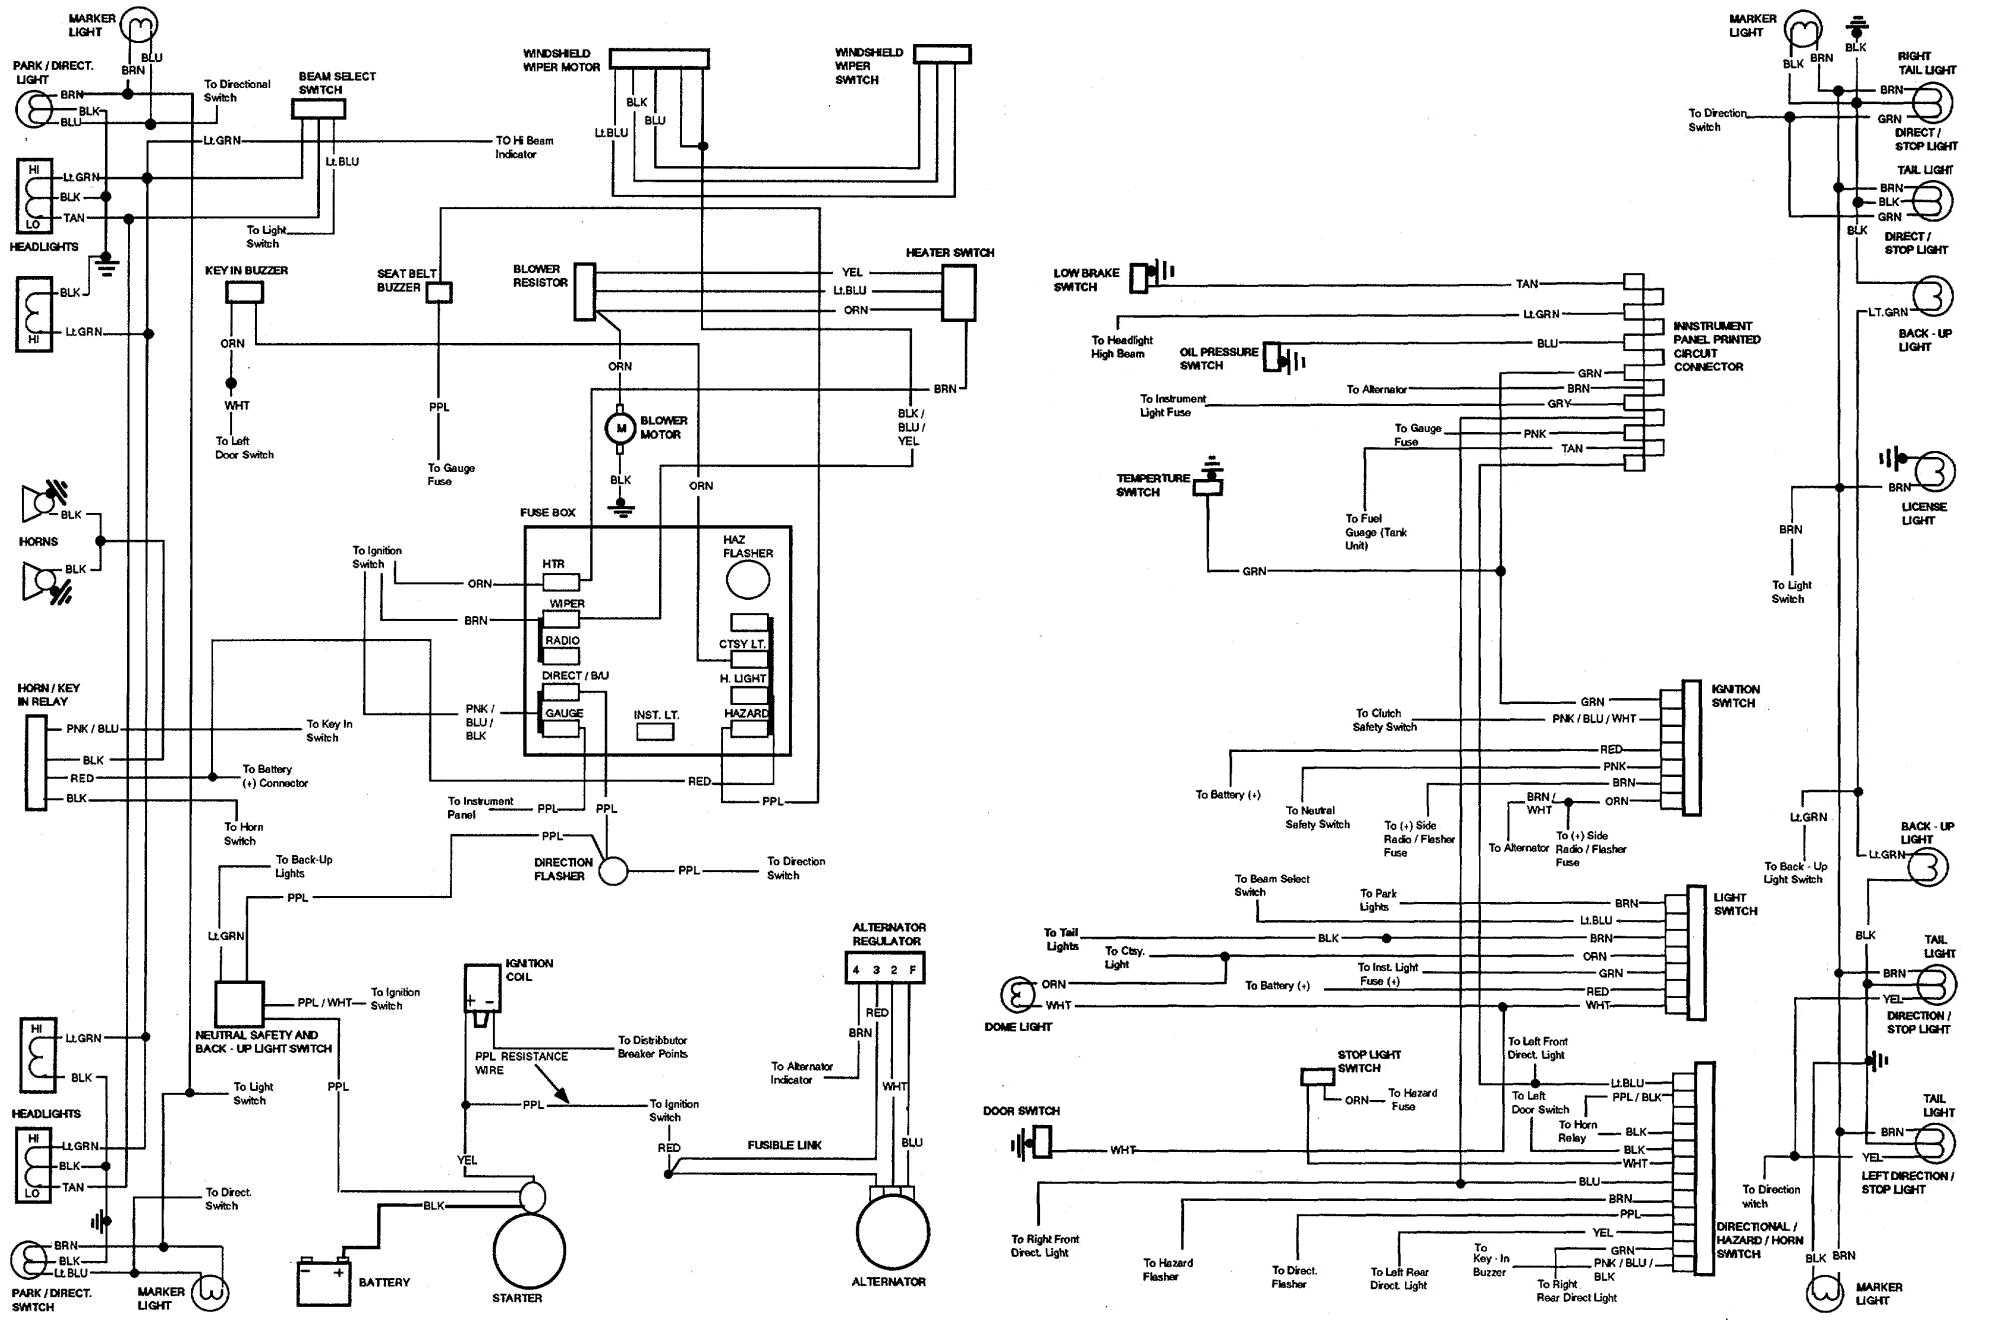 [DIAGRAM] Printable Wiring Diagram 65 Chevelle FULL